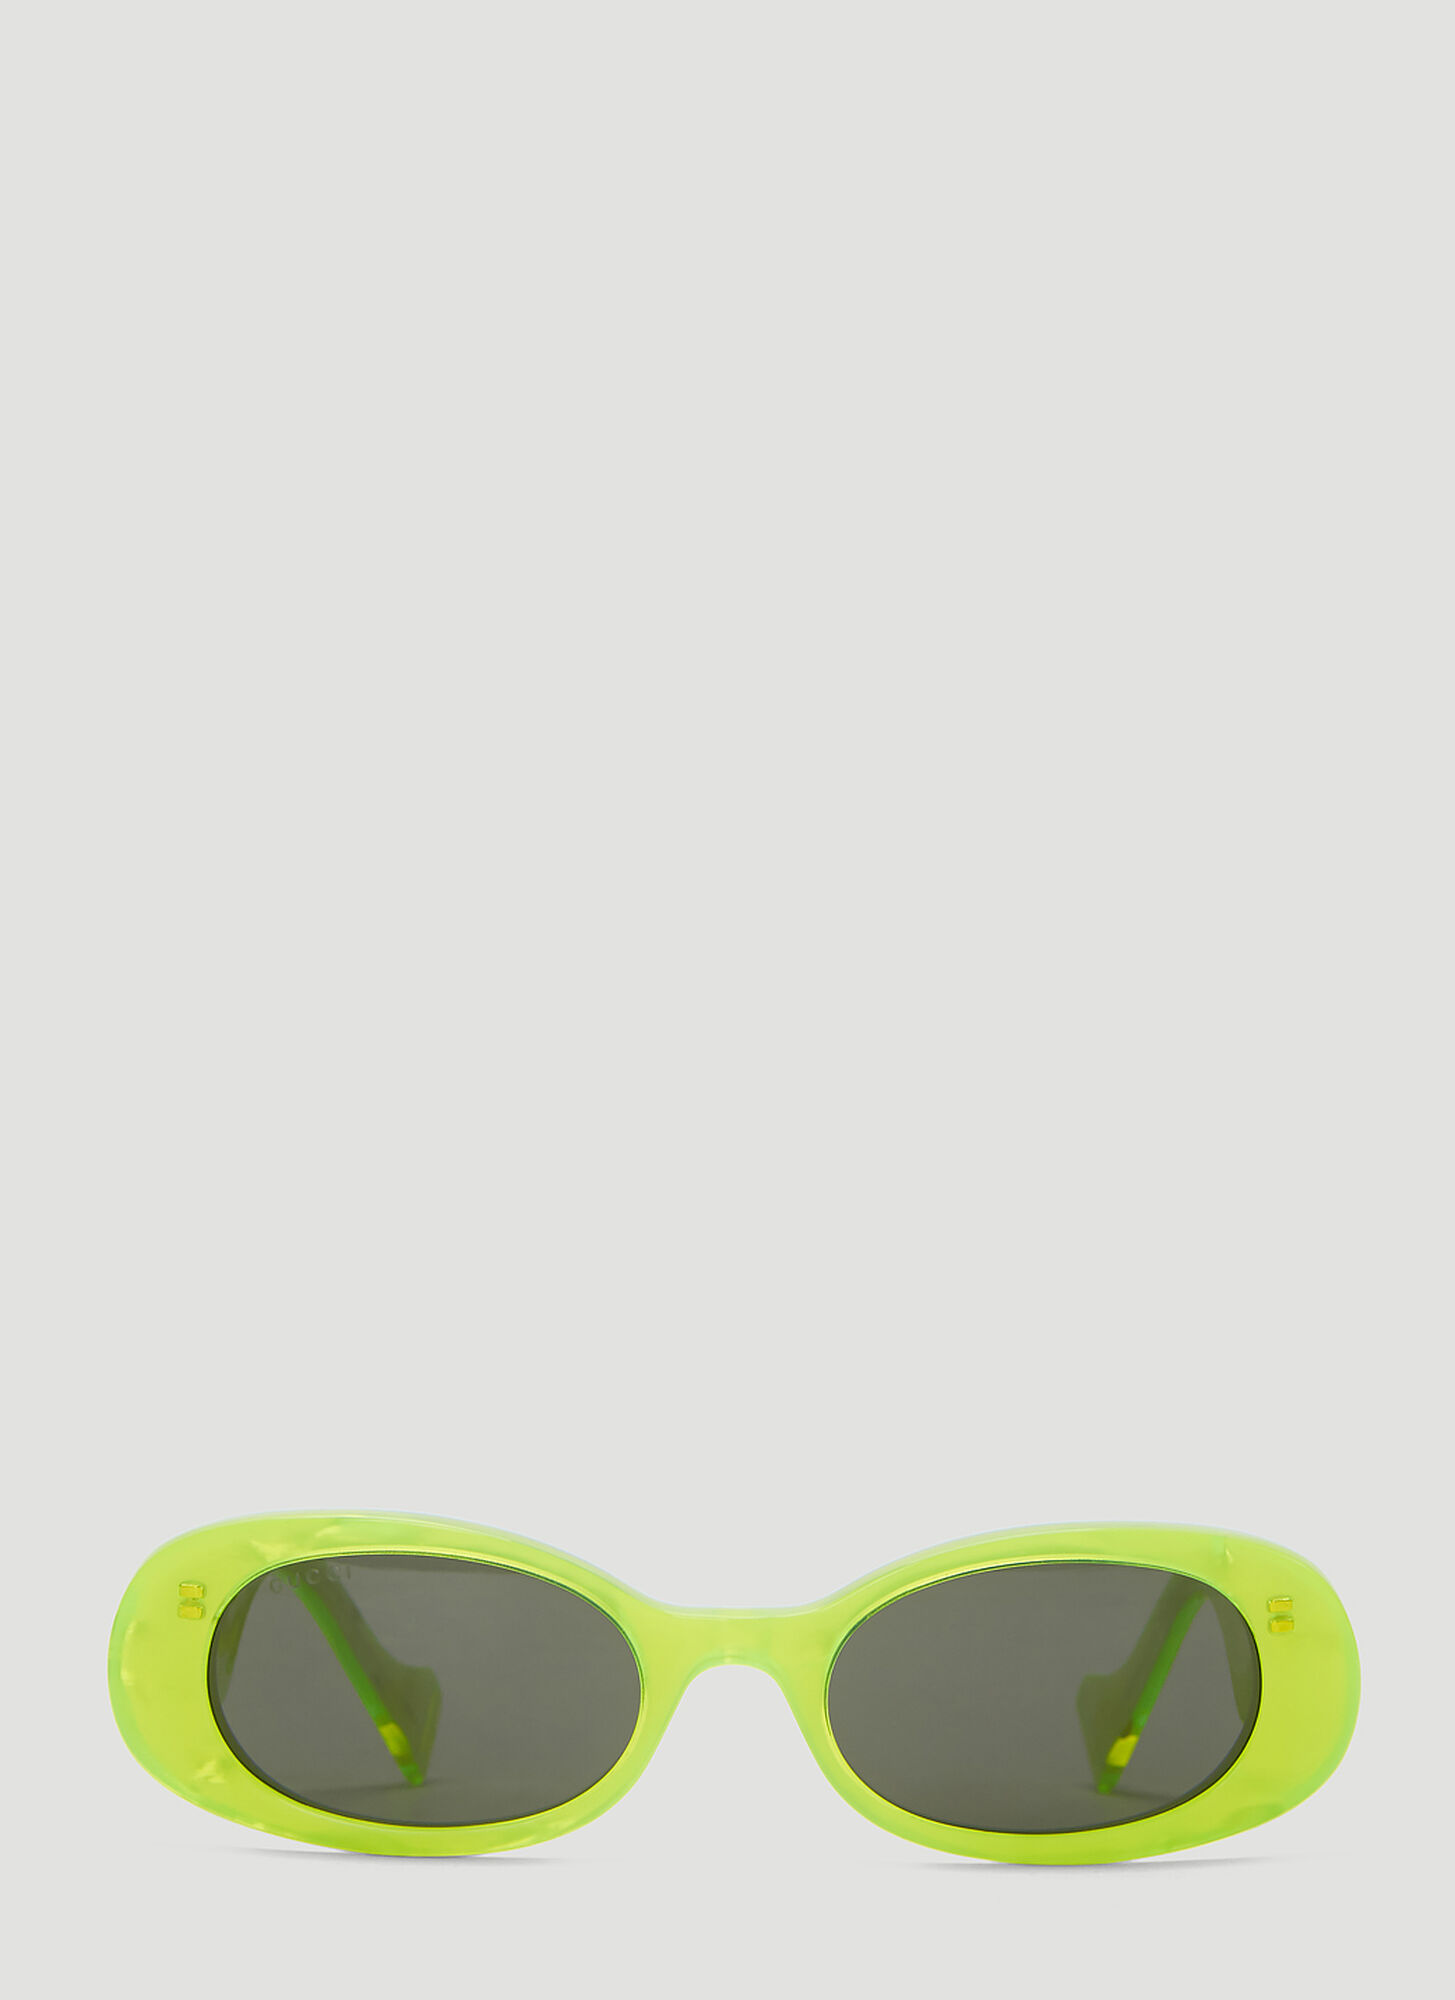 Gucci Oval Sunglasses in Yellow